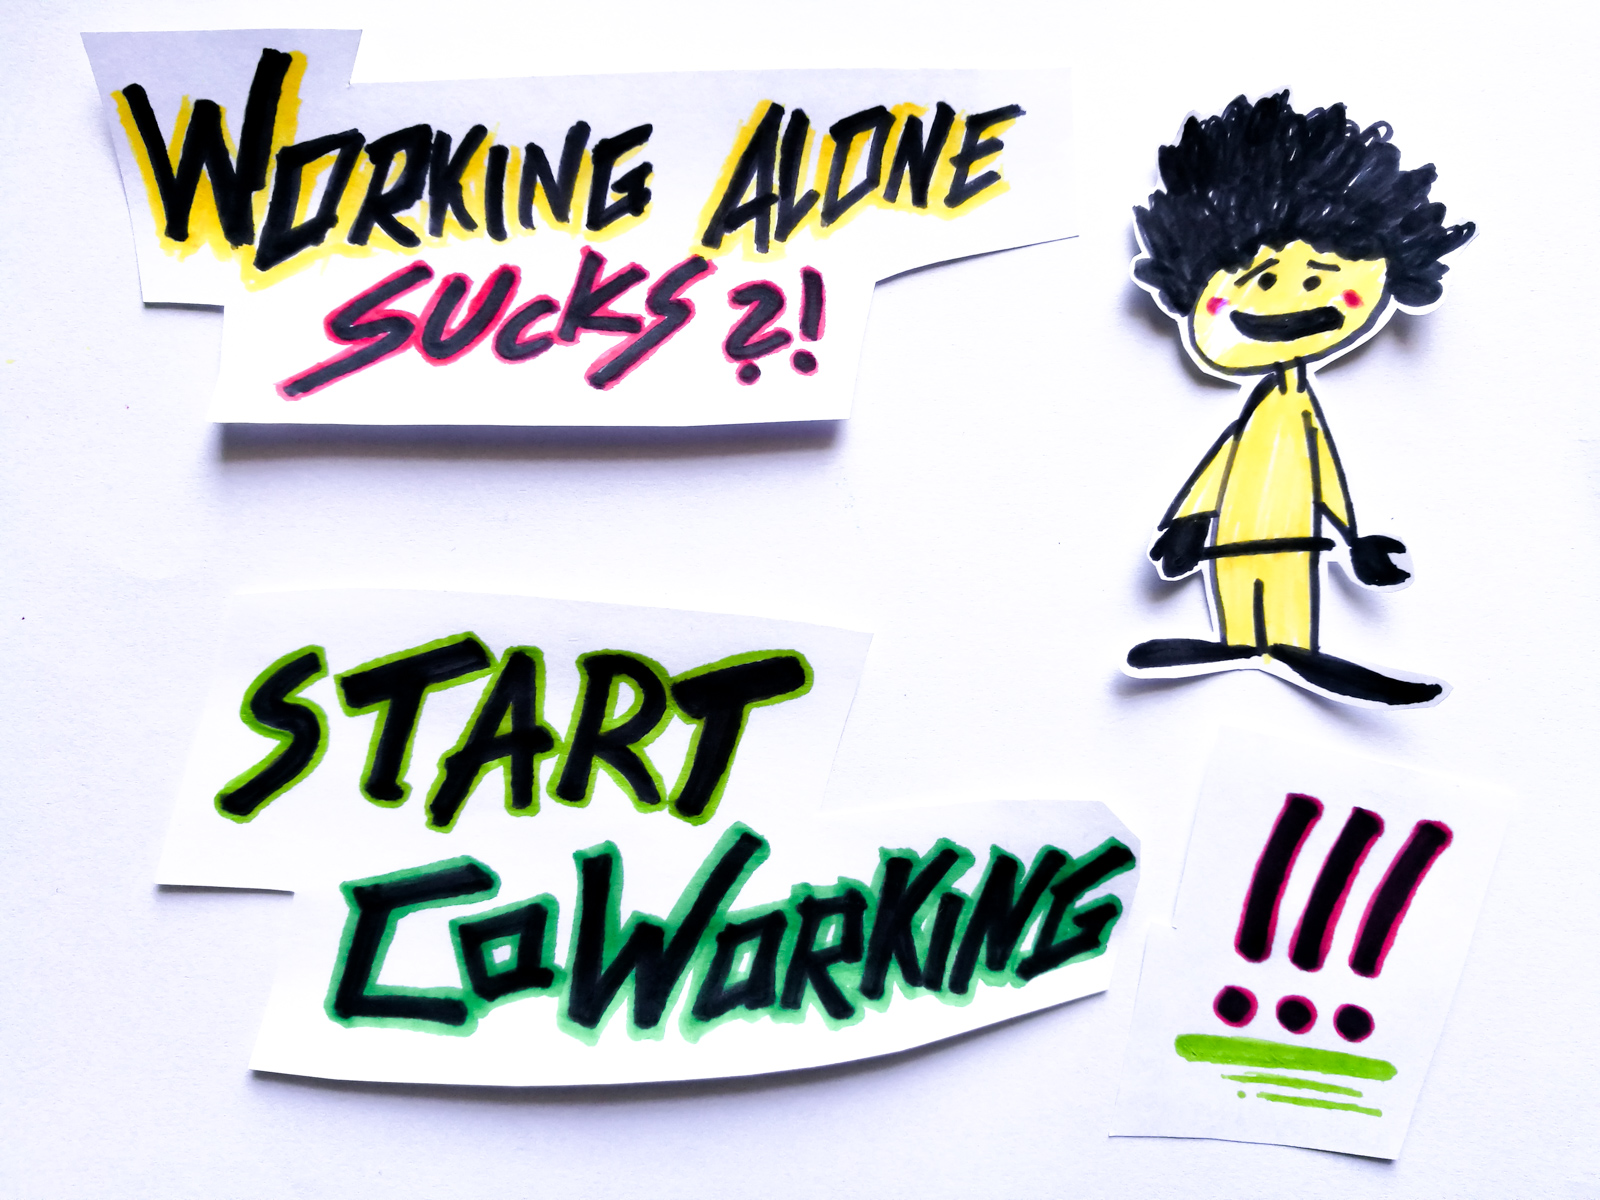 Working alone sucks ... Start CoWorking!